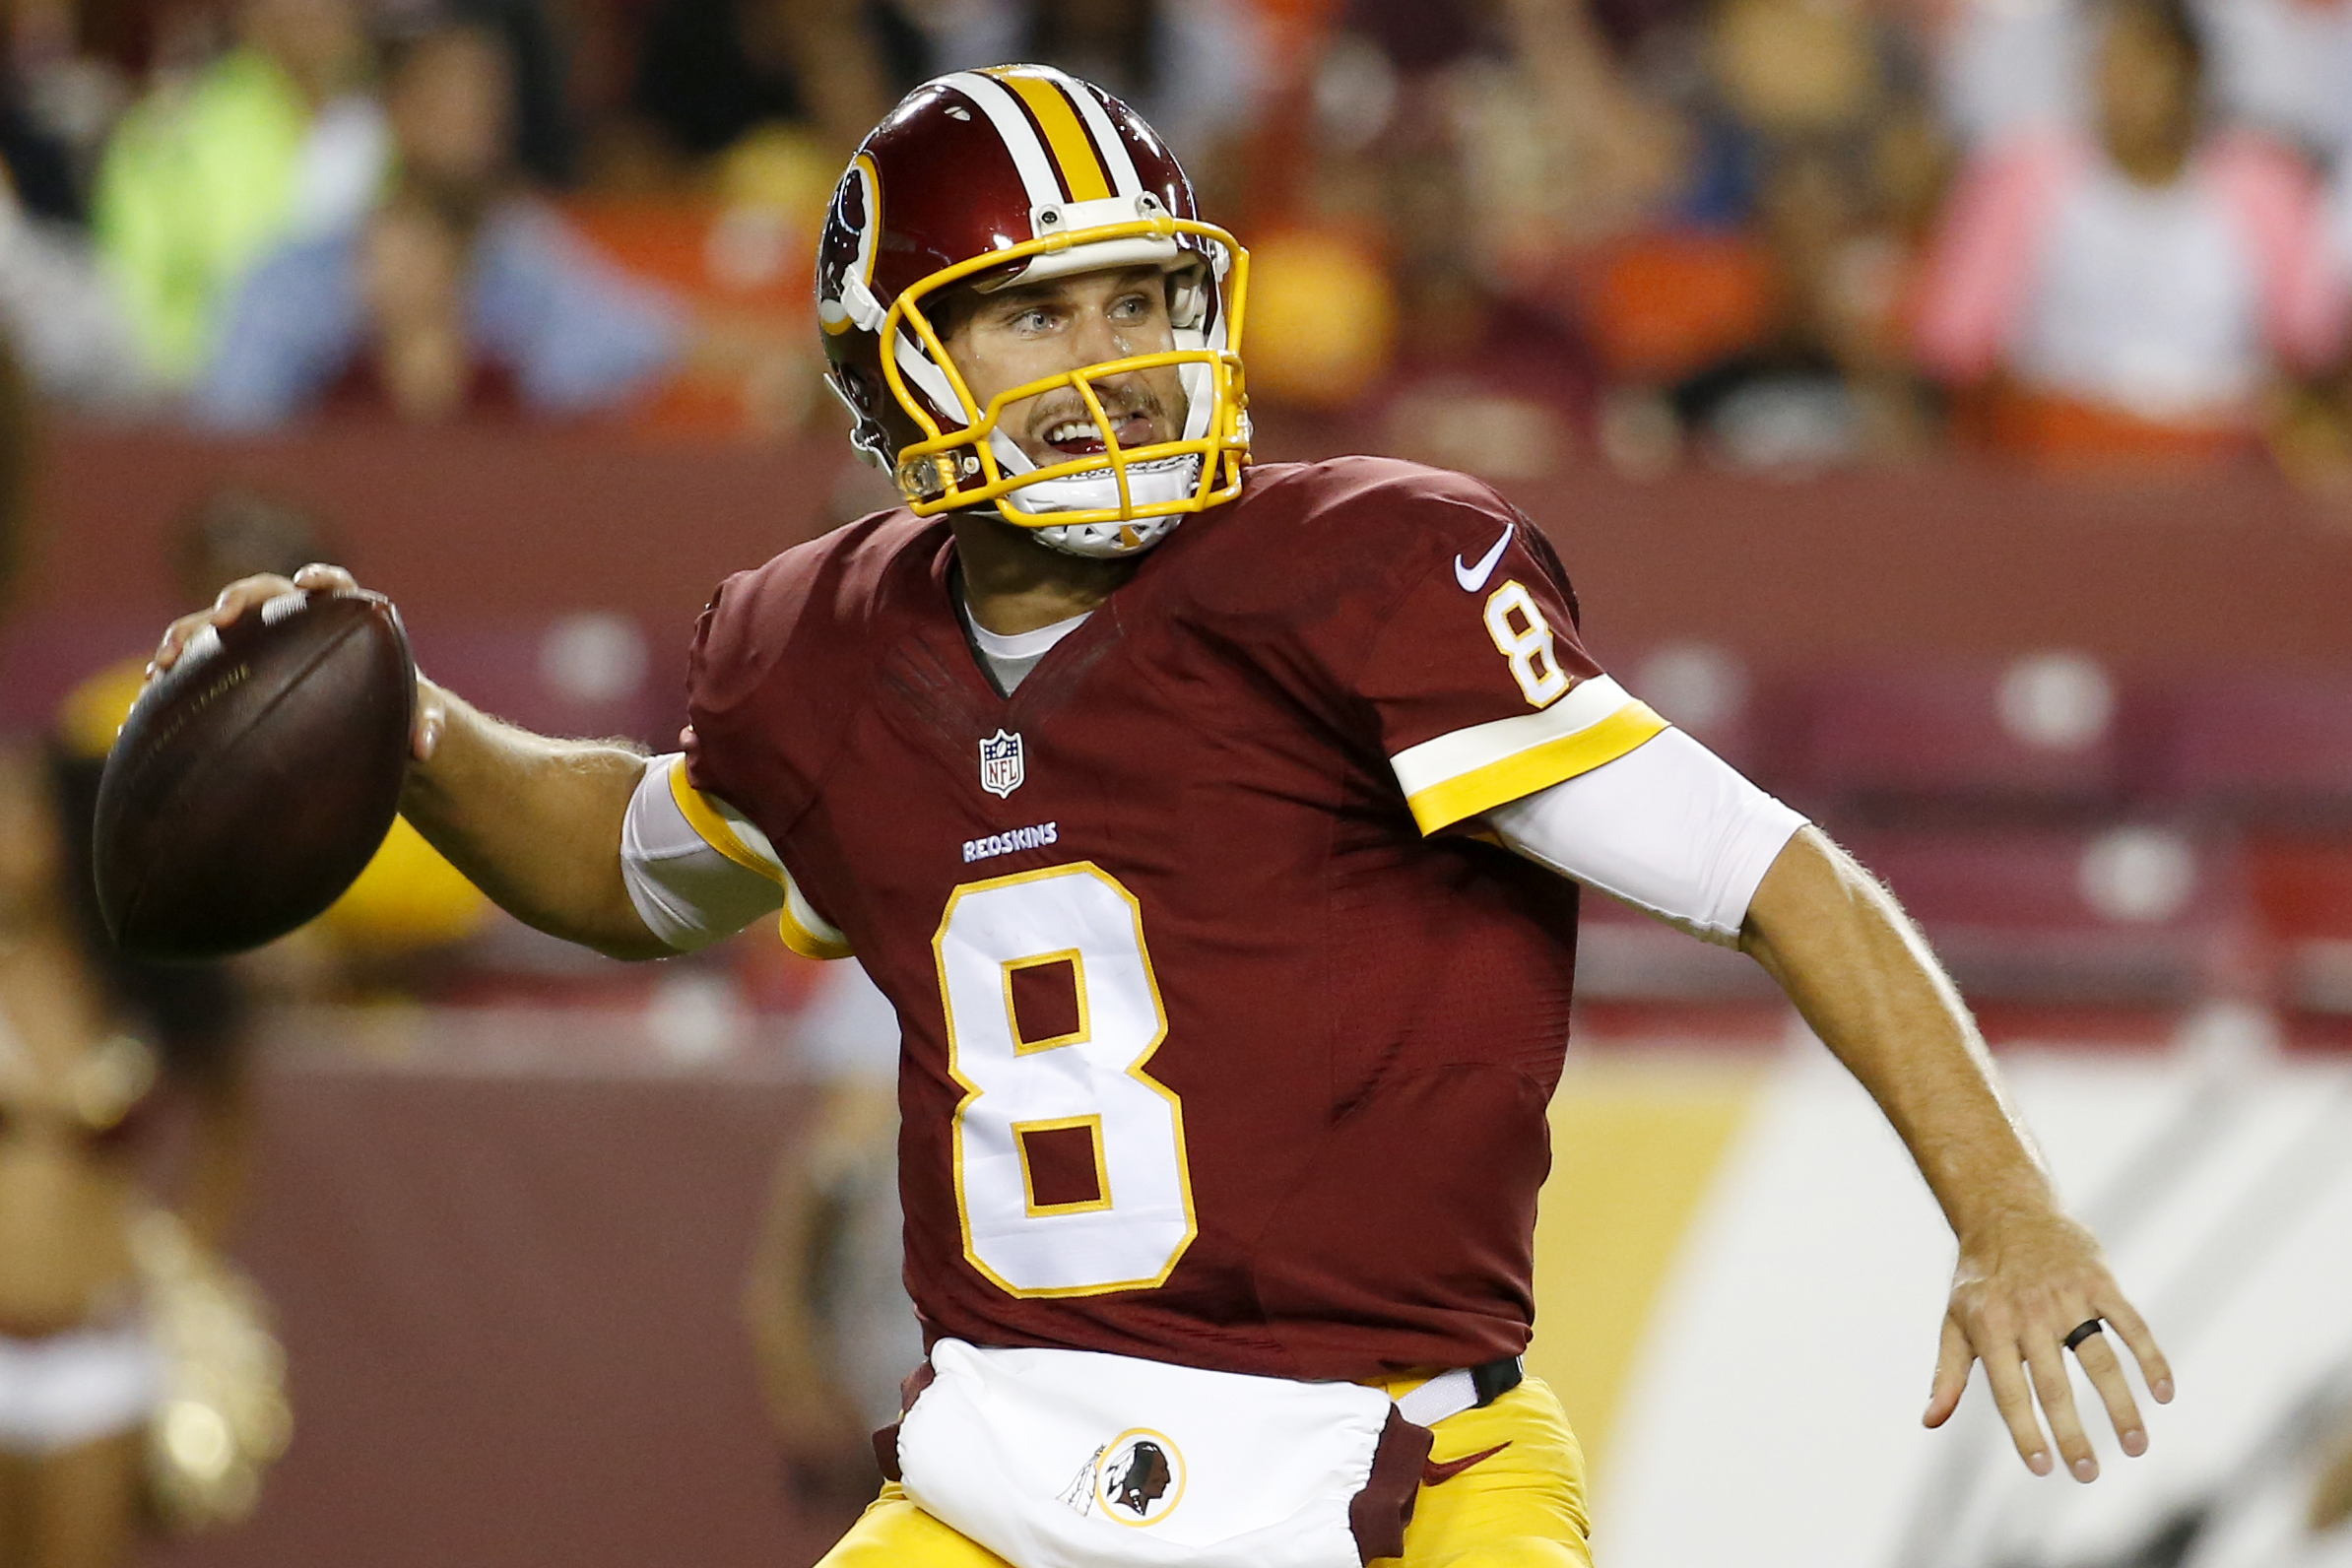 FILE - In this Aug. 20, 2015, file photo, Washington Redskins quarterback Kirk Cousins (8) passes the ball during the second half of an NFL preseason football game against the Detroit Lions in Landover, Md. The Washington Redskins have made a quarterback